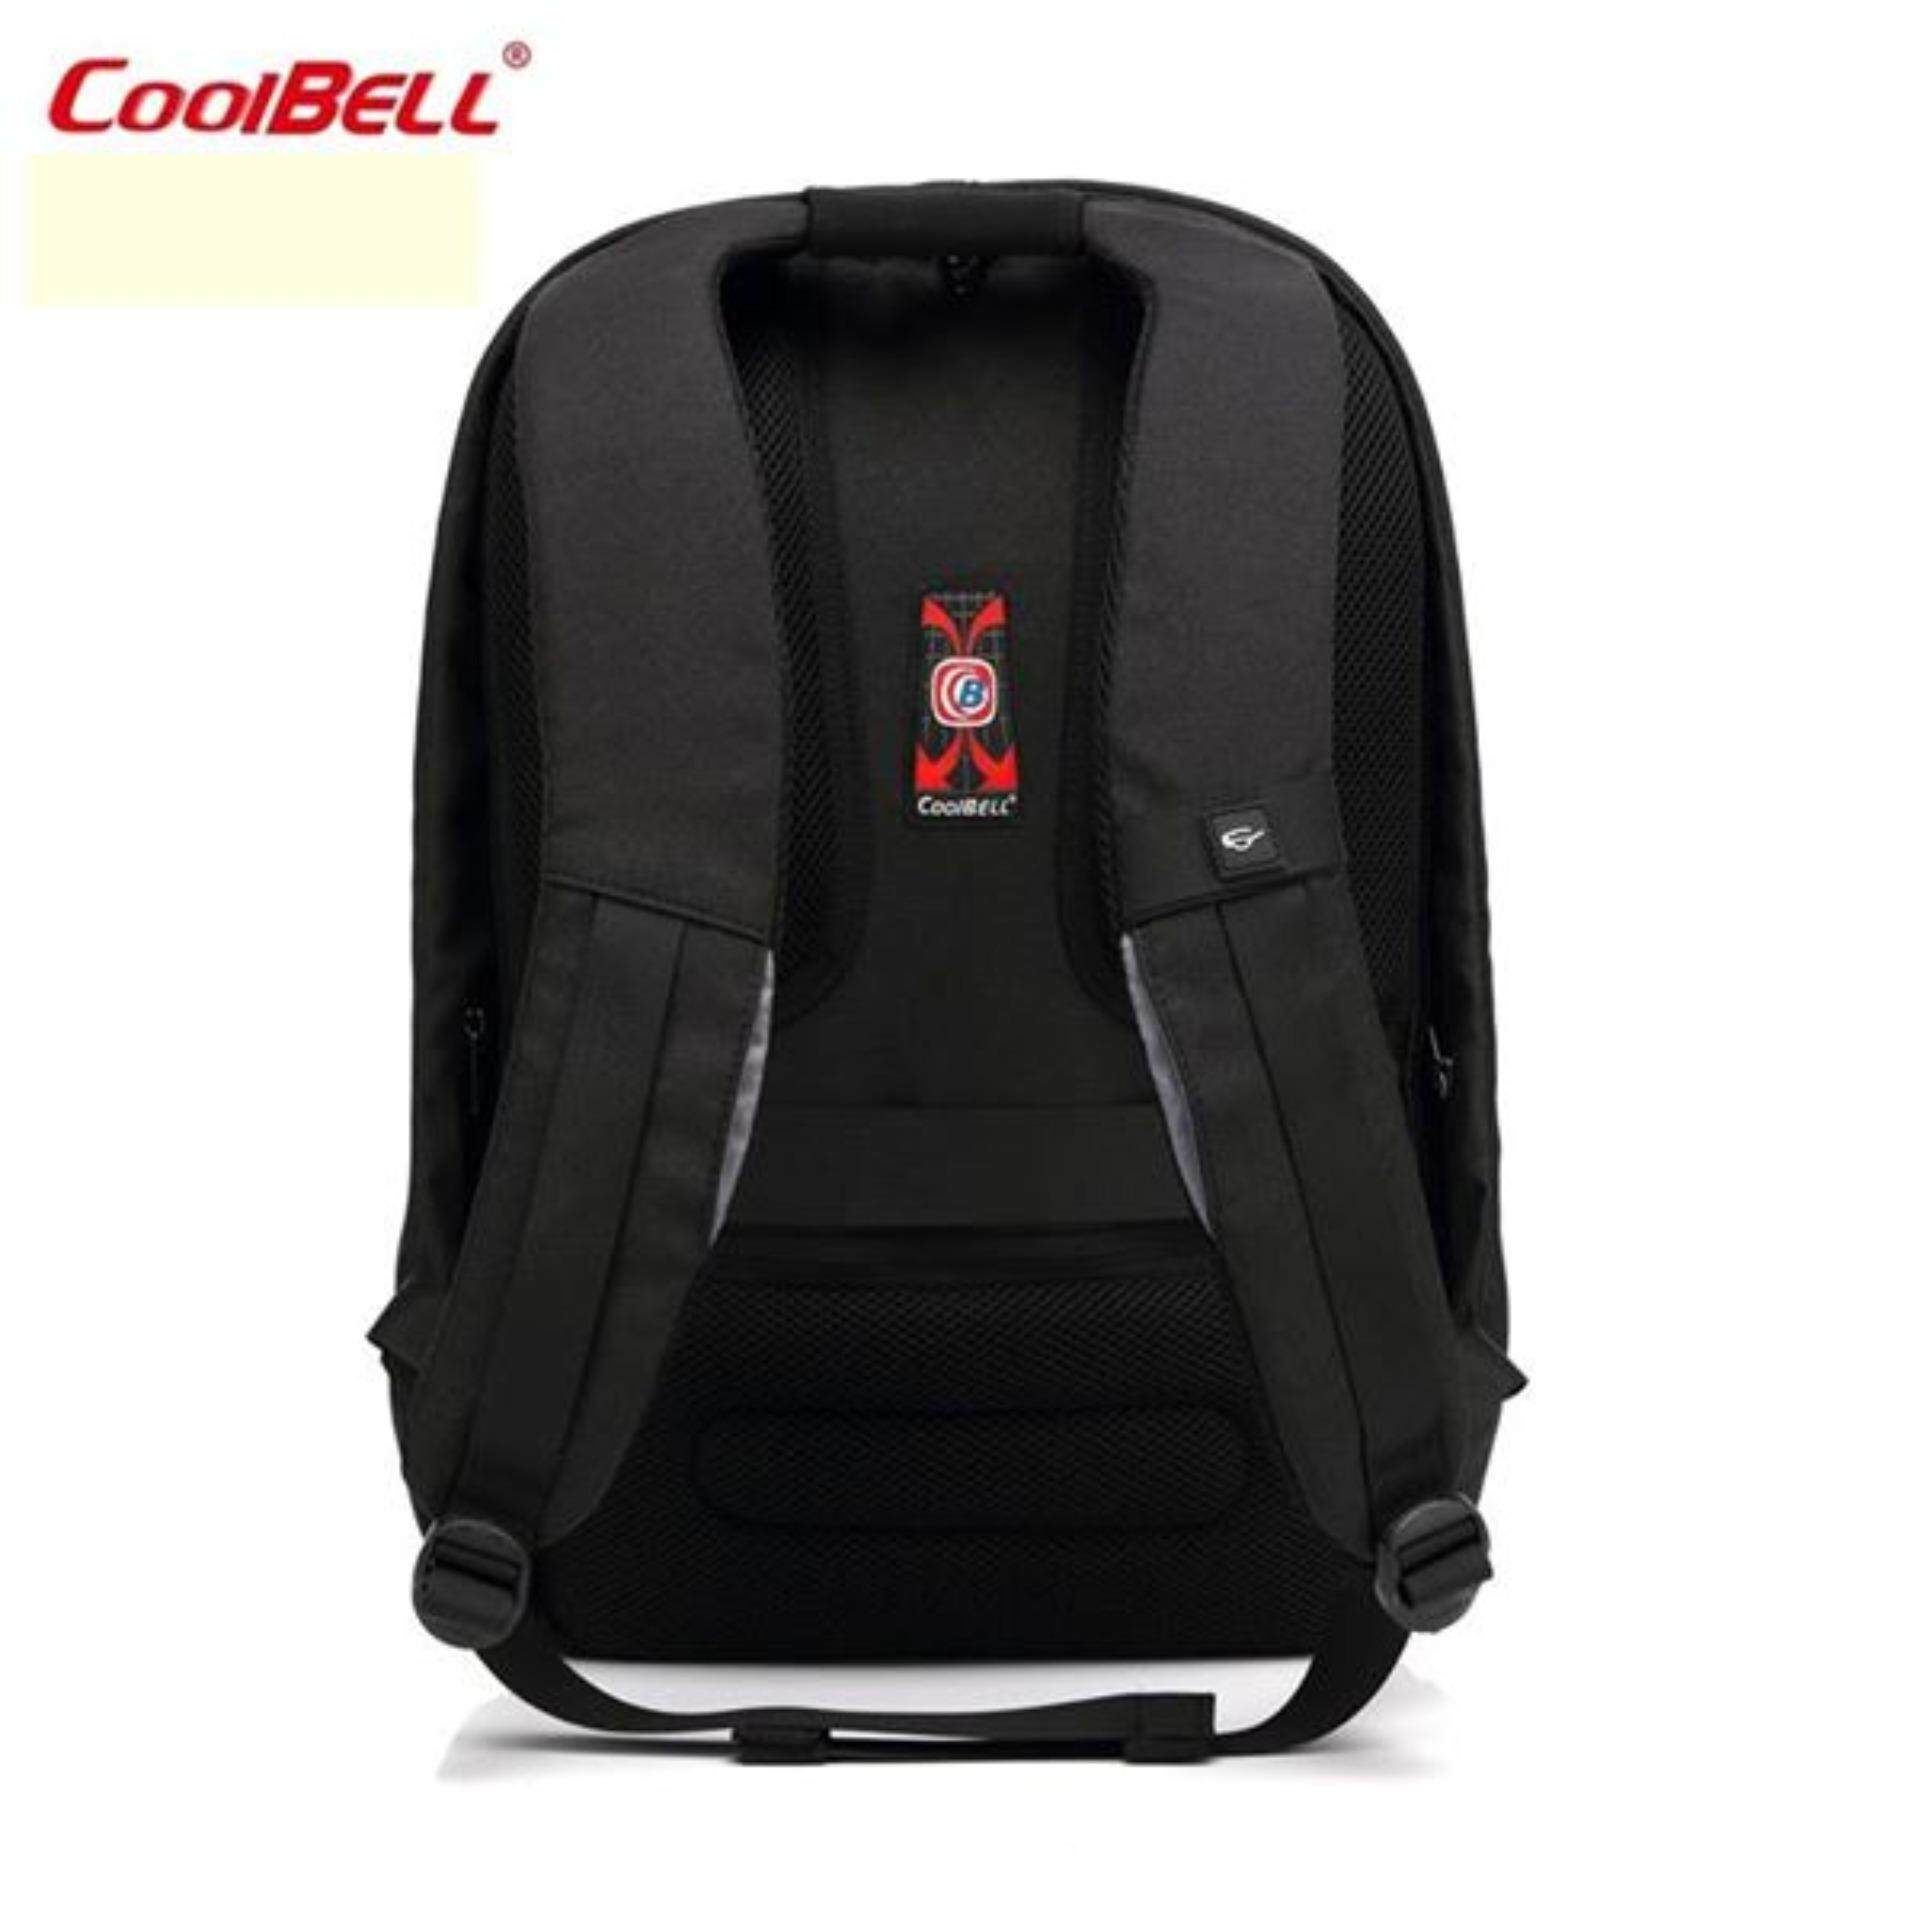 Ykl Coolbell 11 6 Laptop Sleeve Liner Package Waterproof Notebook Original Digital Bodyguard Dtbg Business Travel Backpack Bag Usb Port D8205w 156 Inch